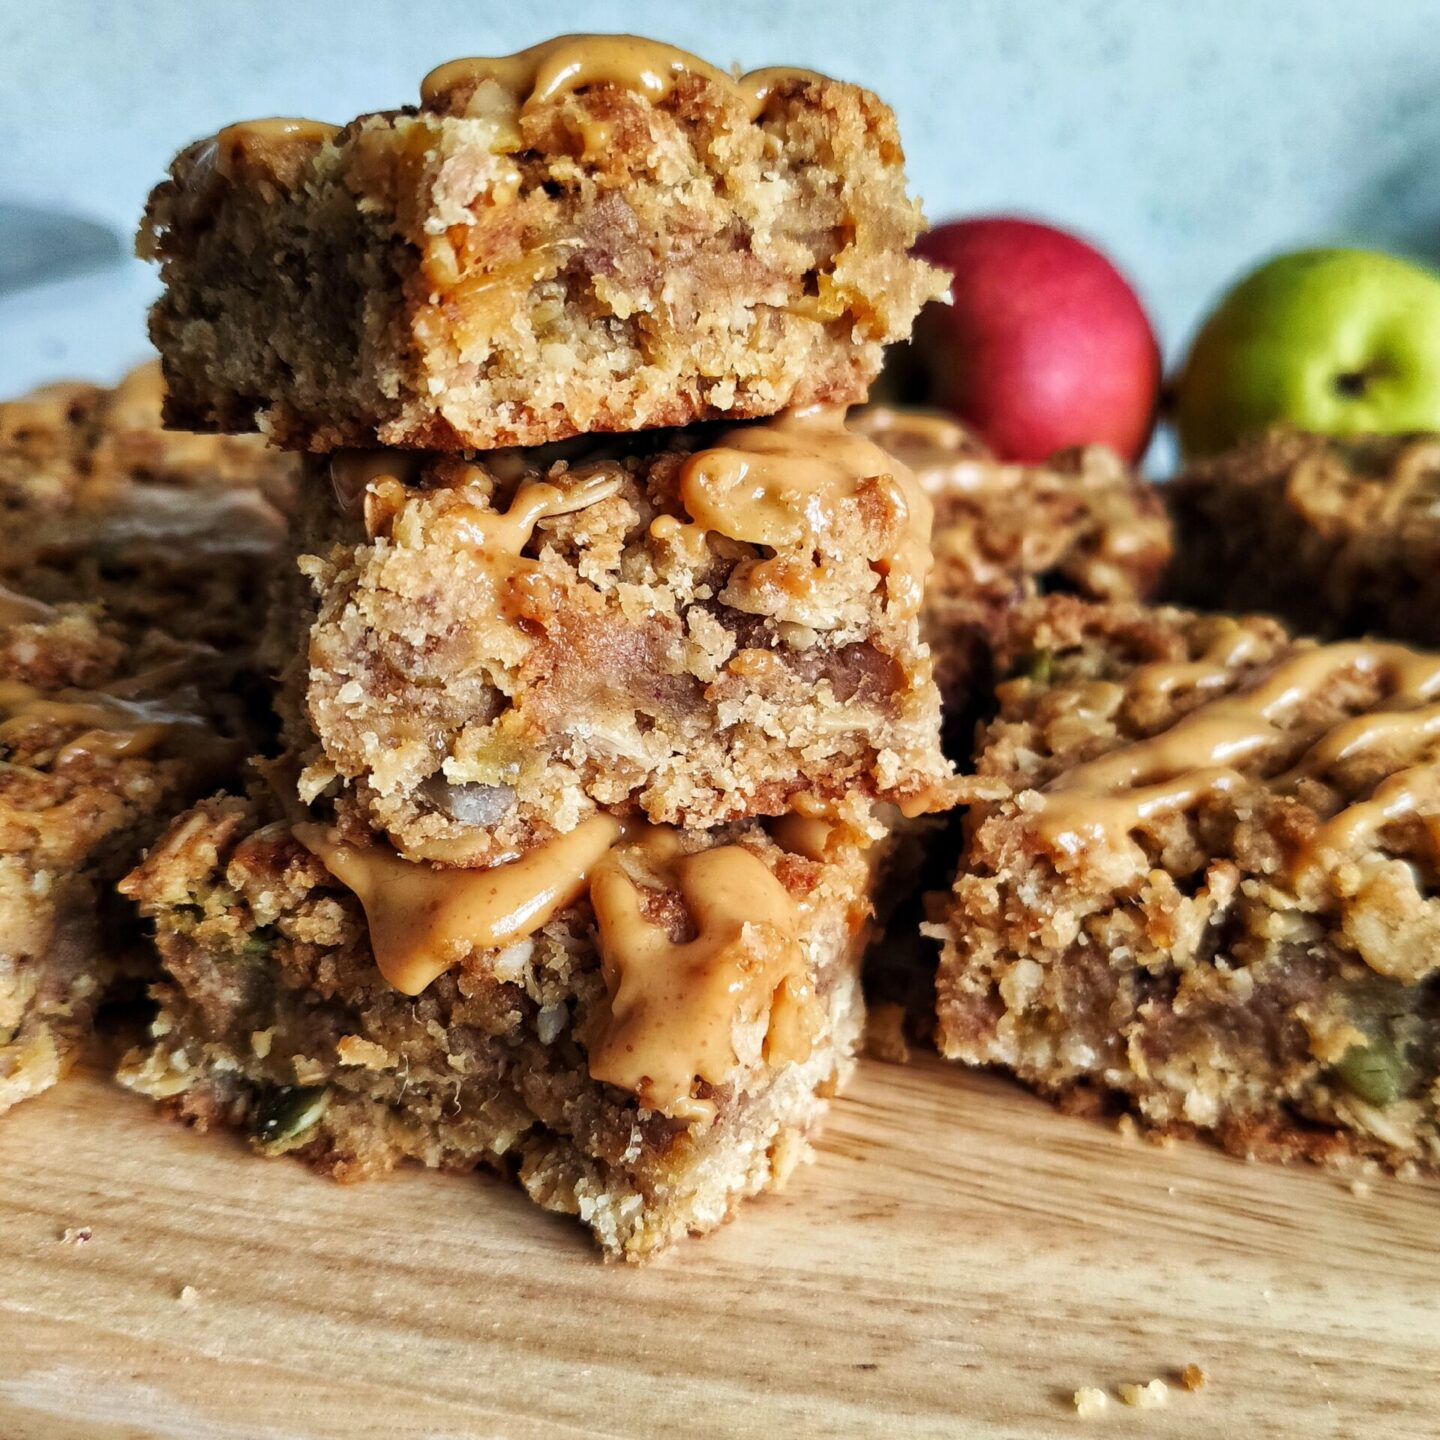 Apple Flapjacks with a Peanut Butter Drizzle (Ve)